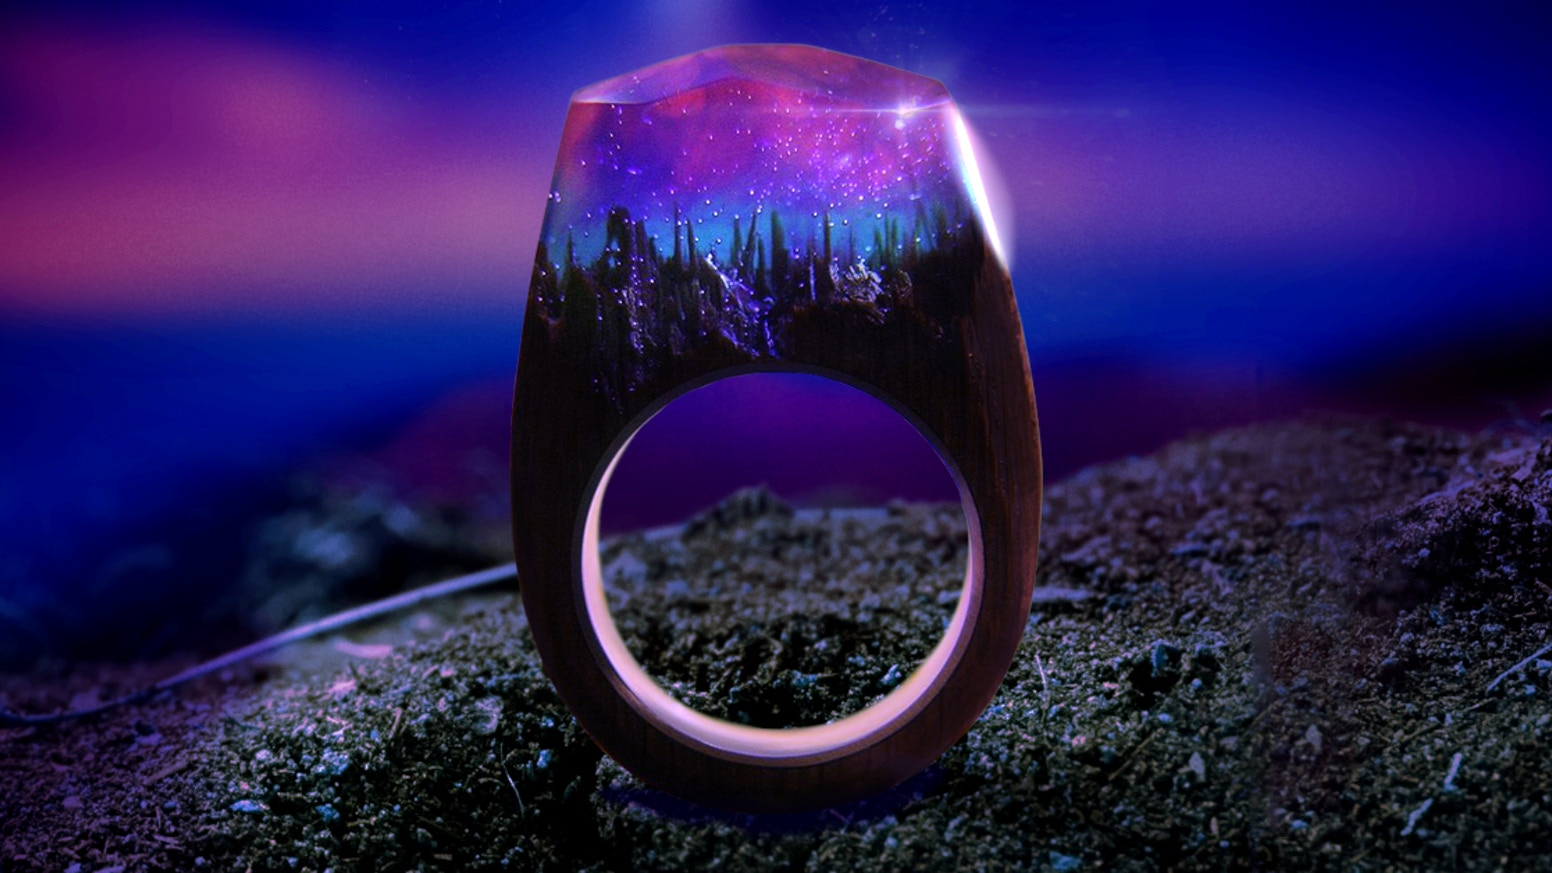 Enchanted Soul - Handcrafted rings imparted with natural materials such as flowers, wood, moss, amber, etc.